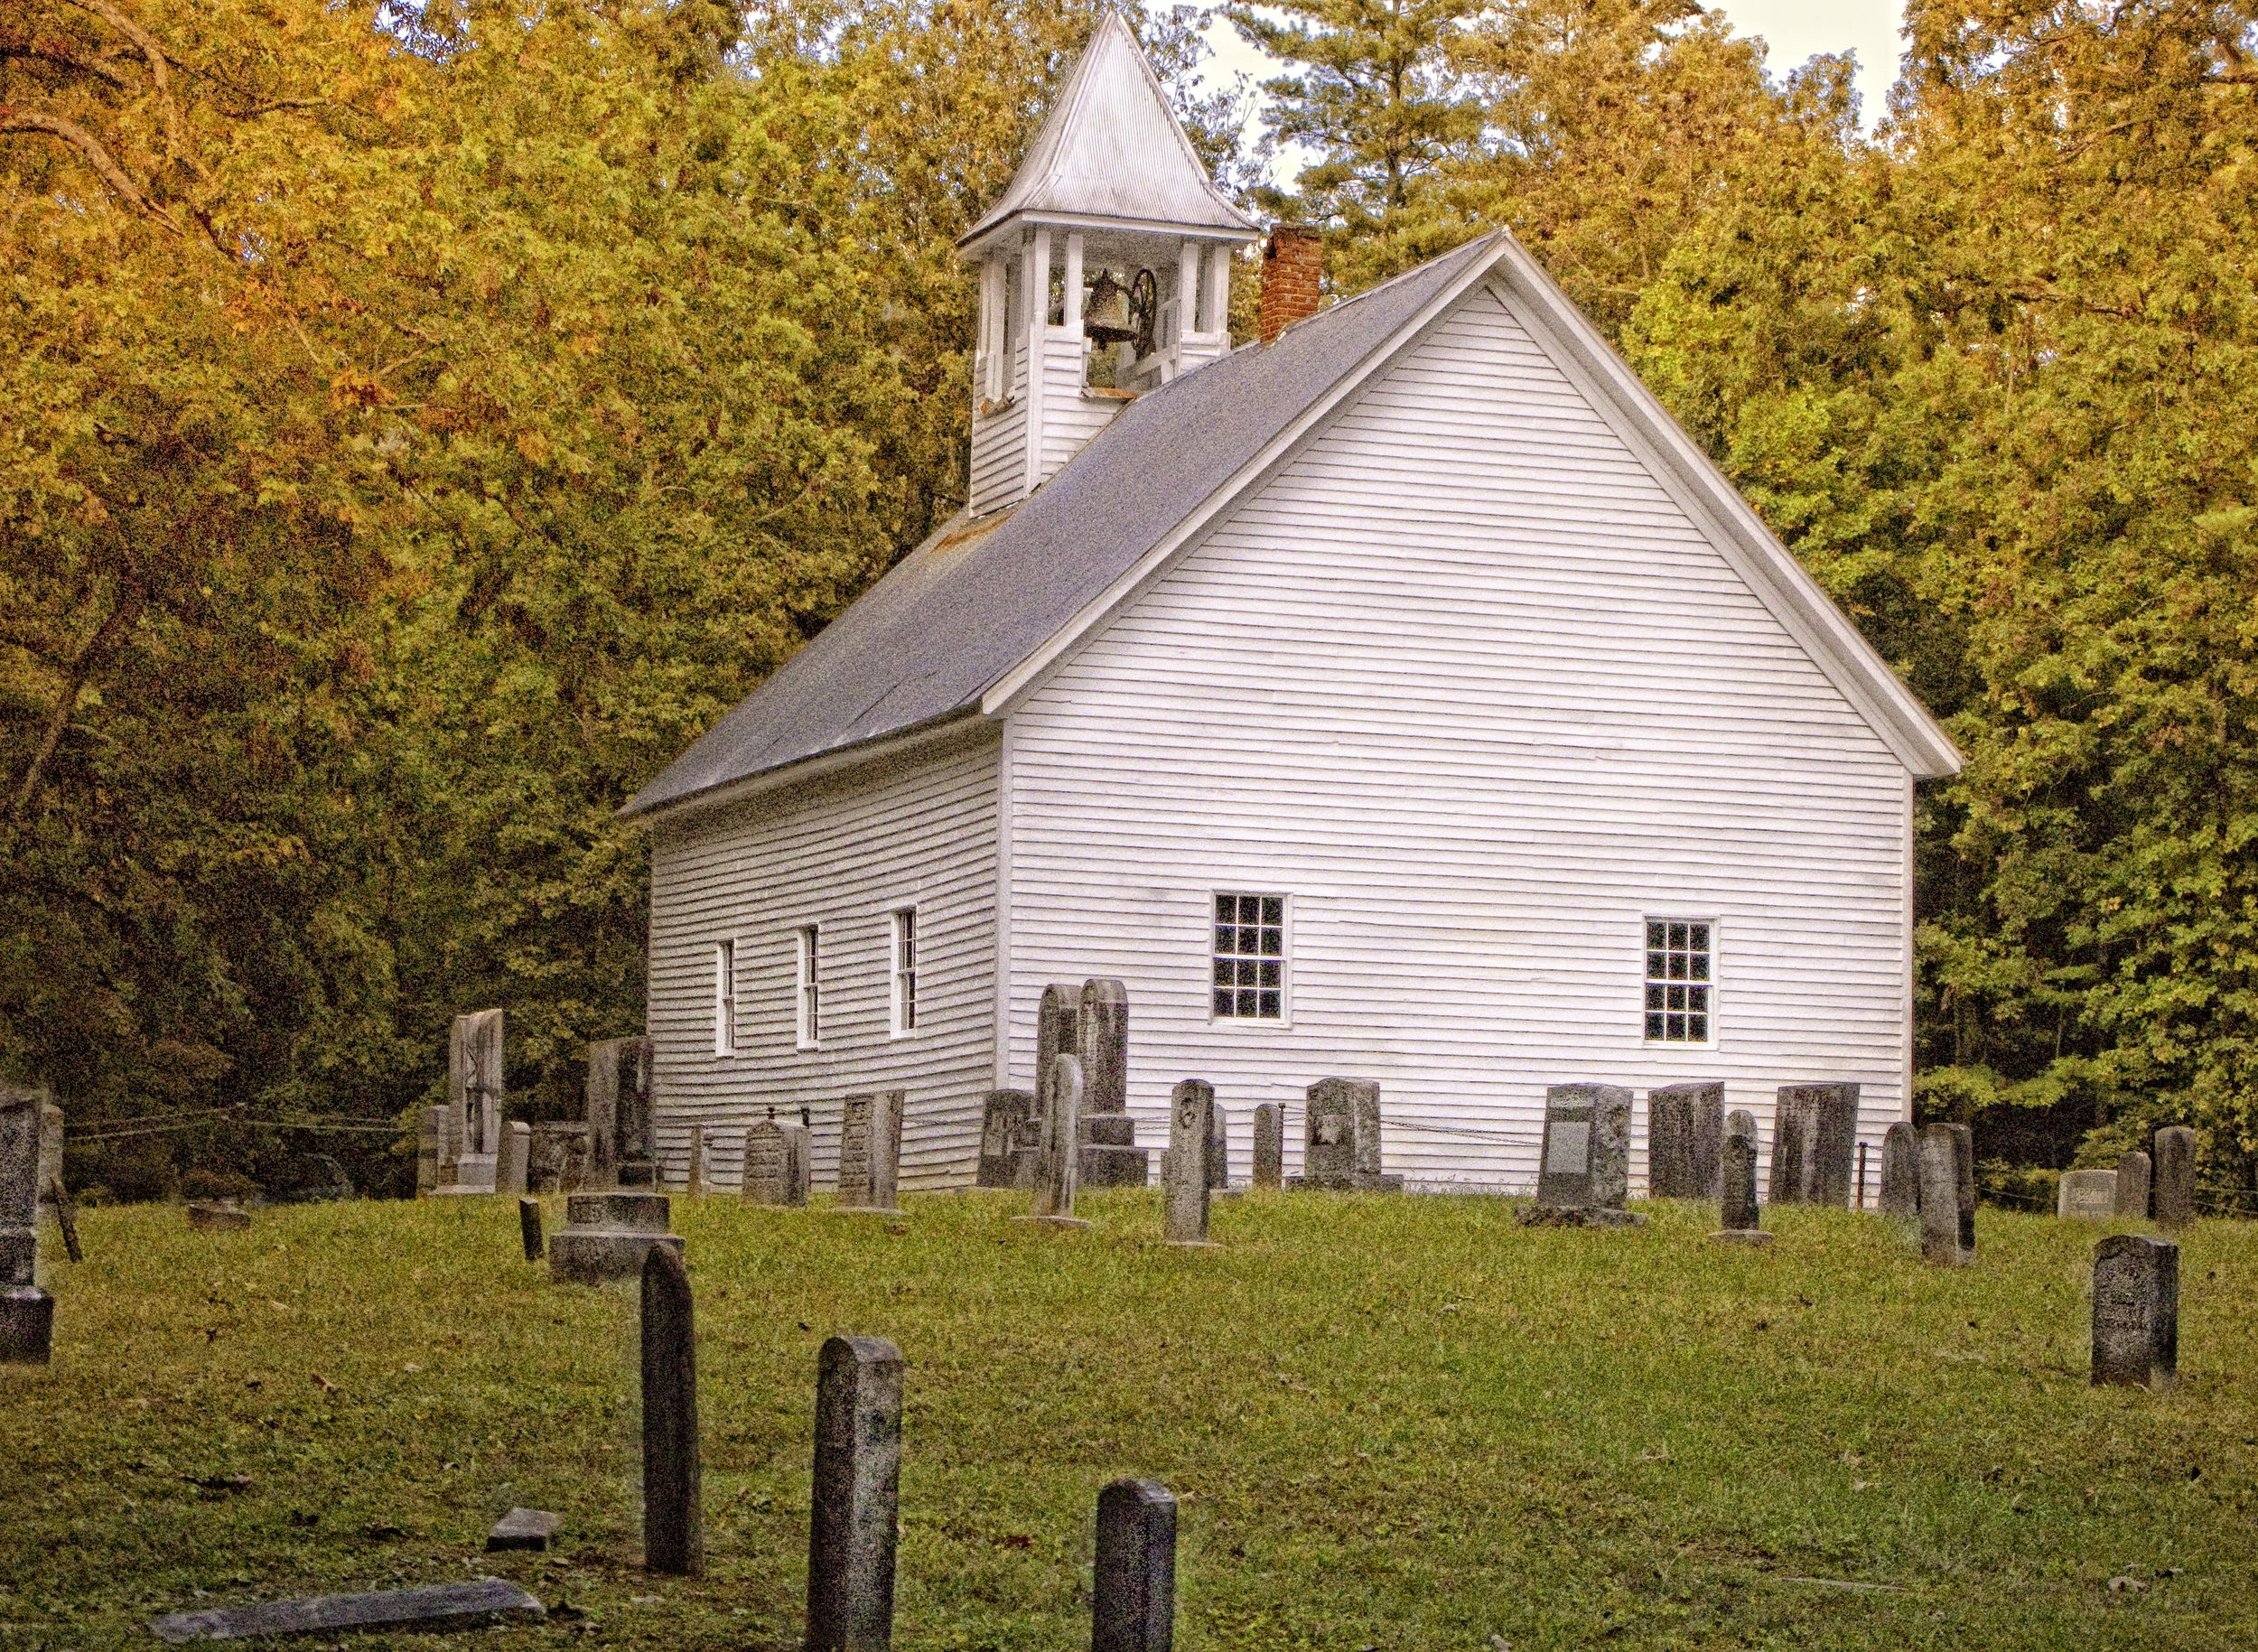 cades cove church copy.jpg